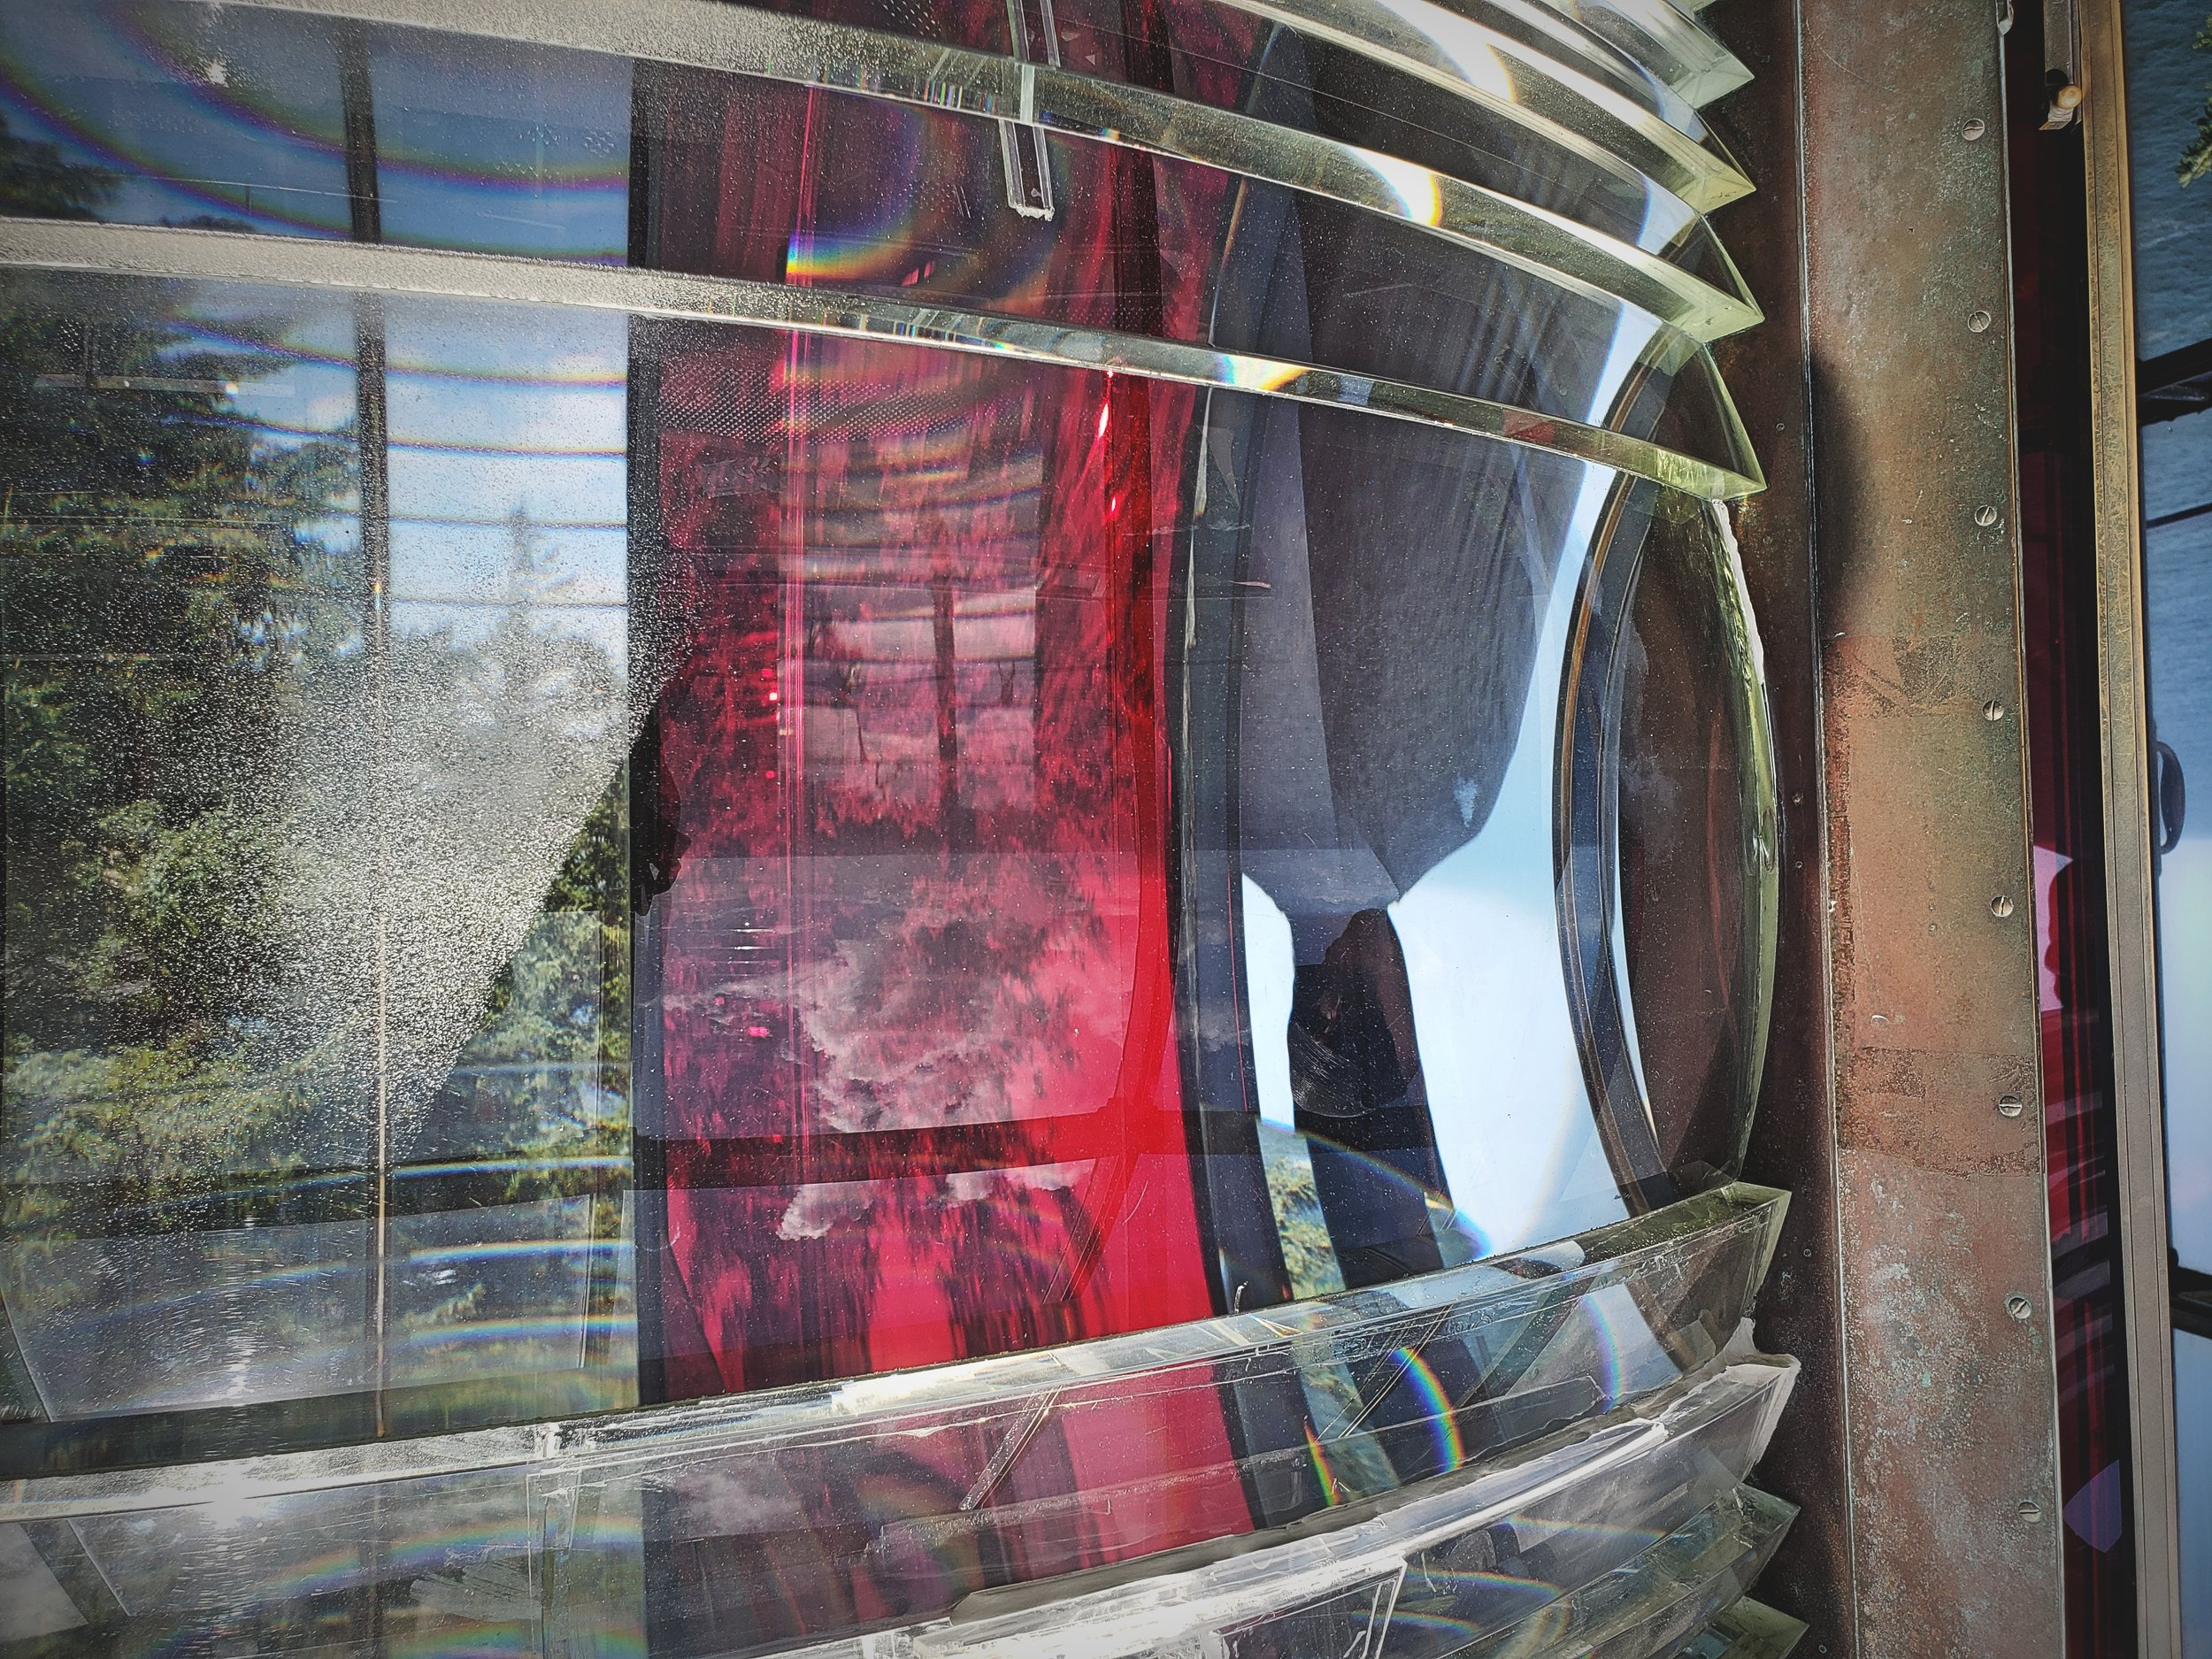 The original Fresnel lens at the top of the Cape Meares Lighthouse.